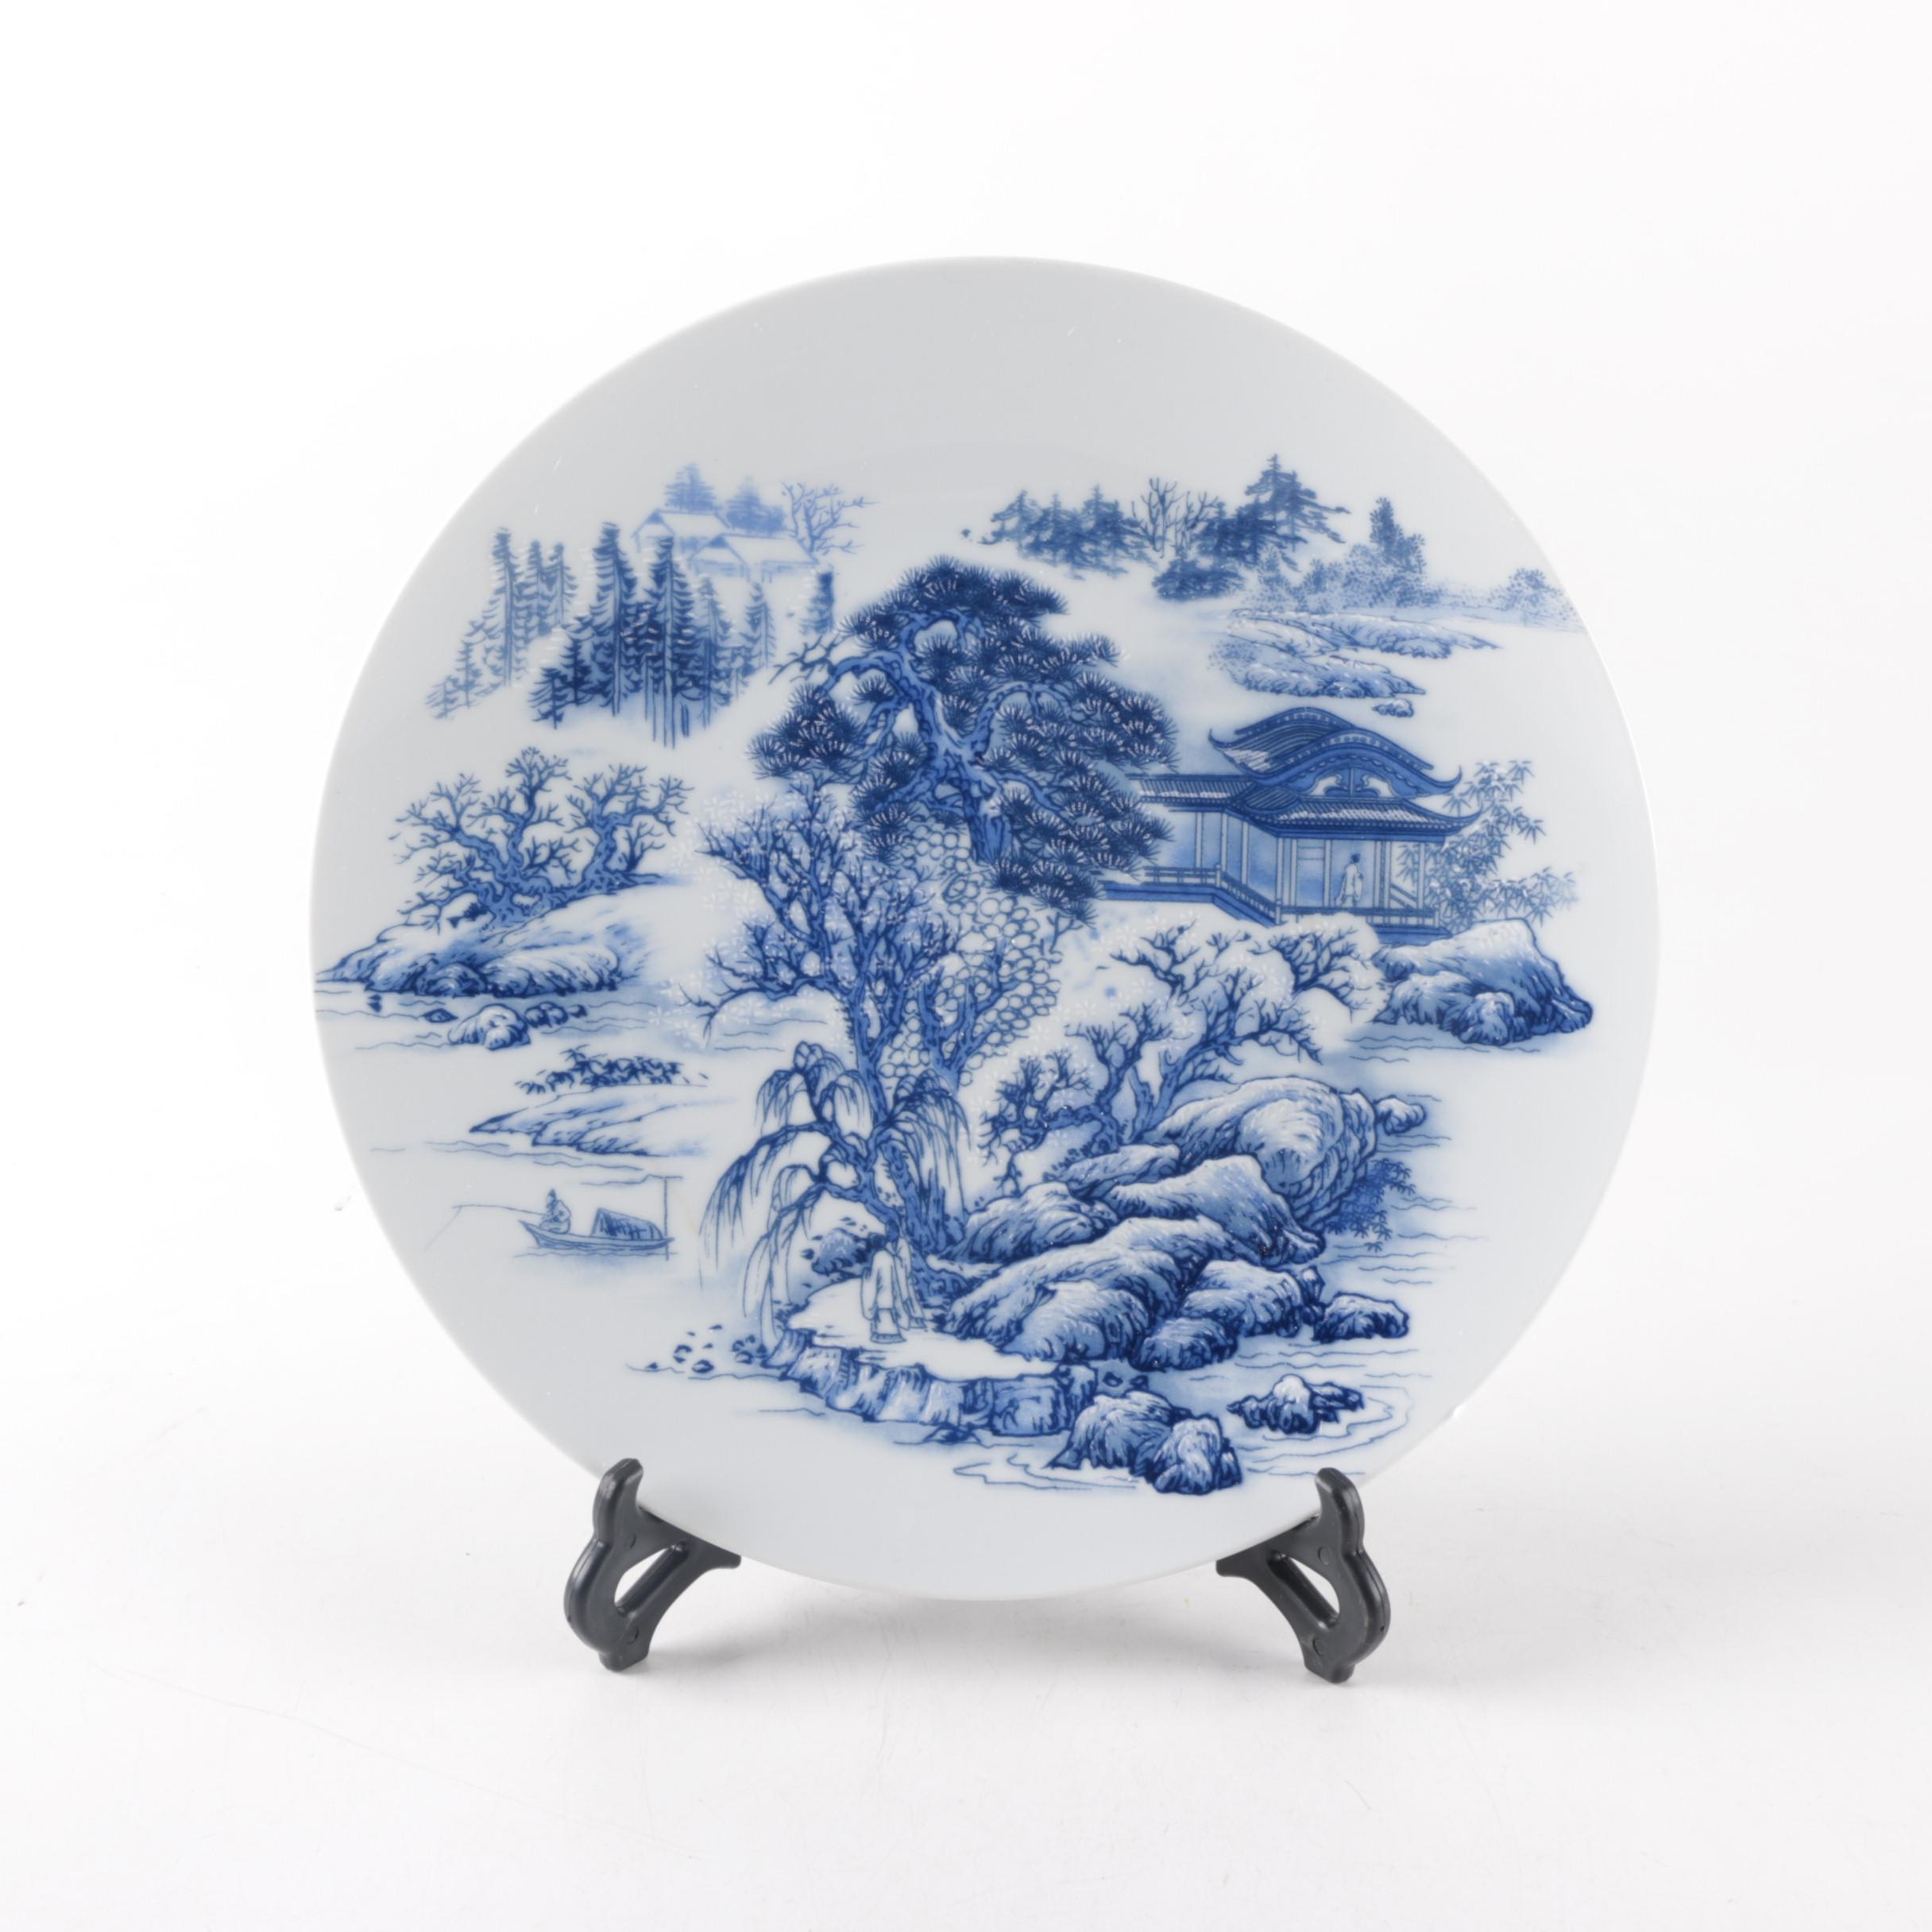 Chinese Blue and White Porcelain Plate with Stand